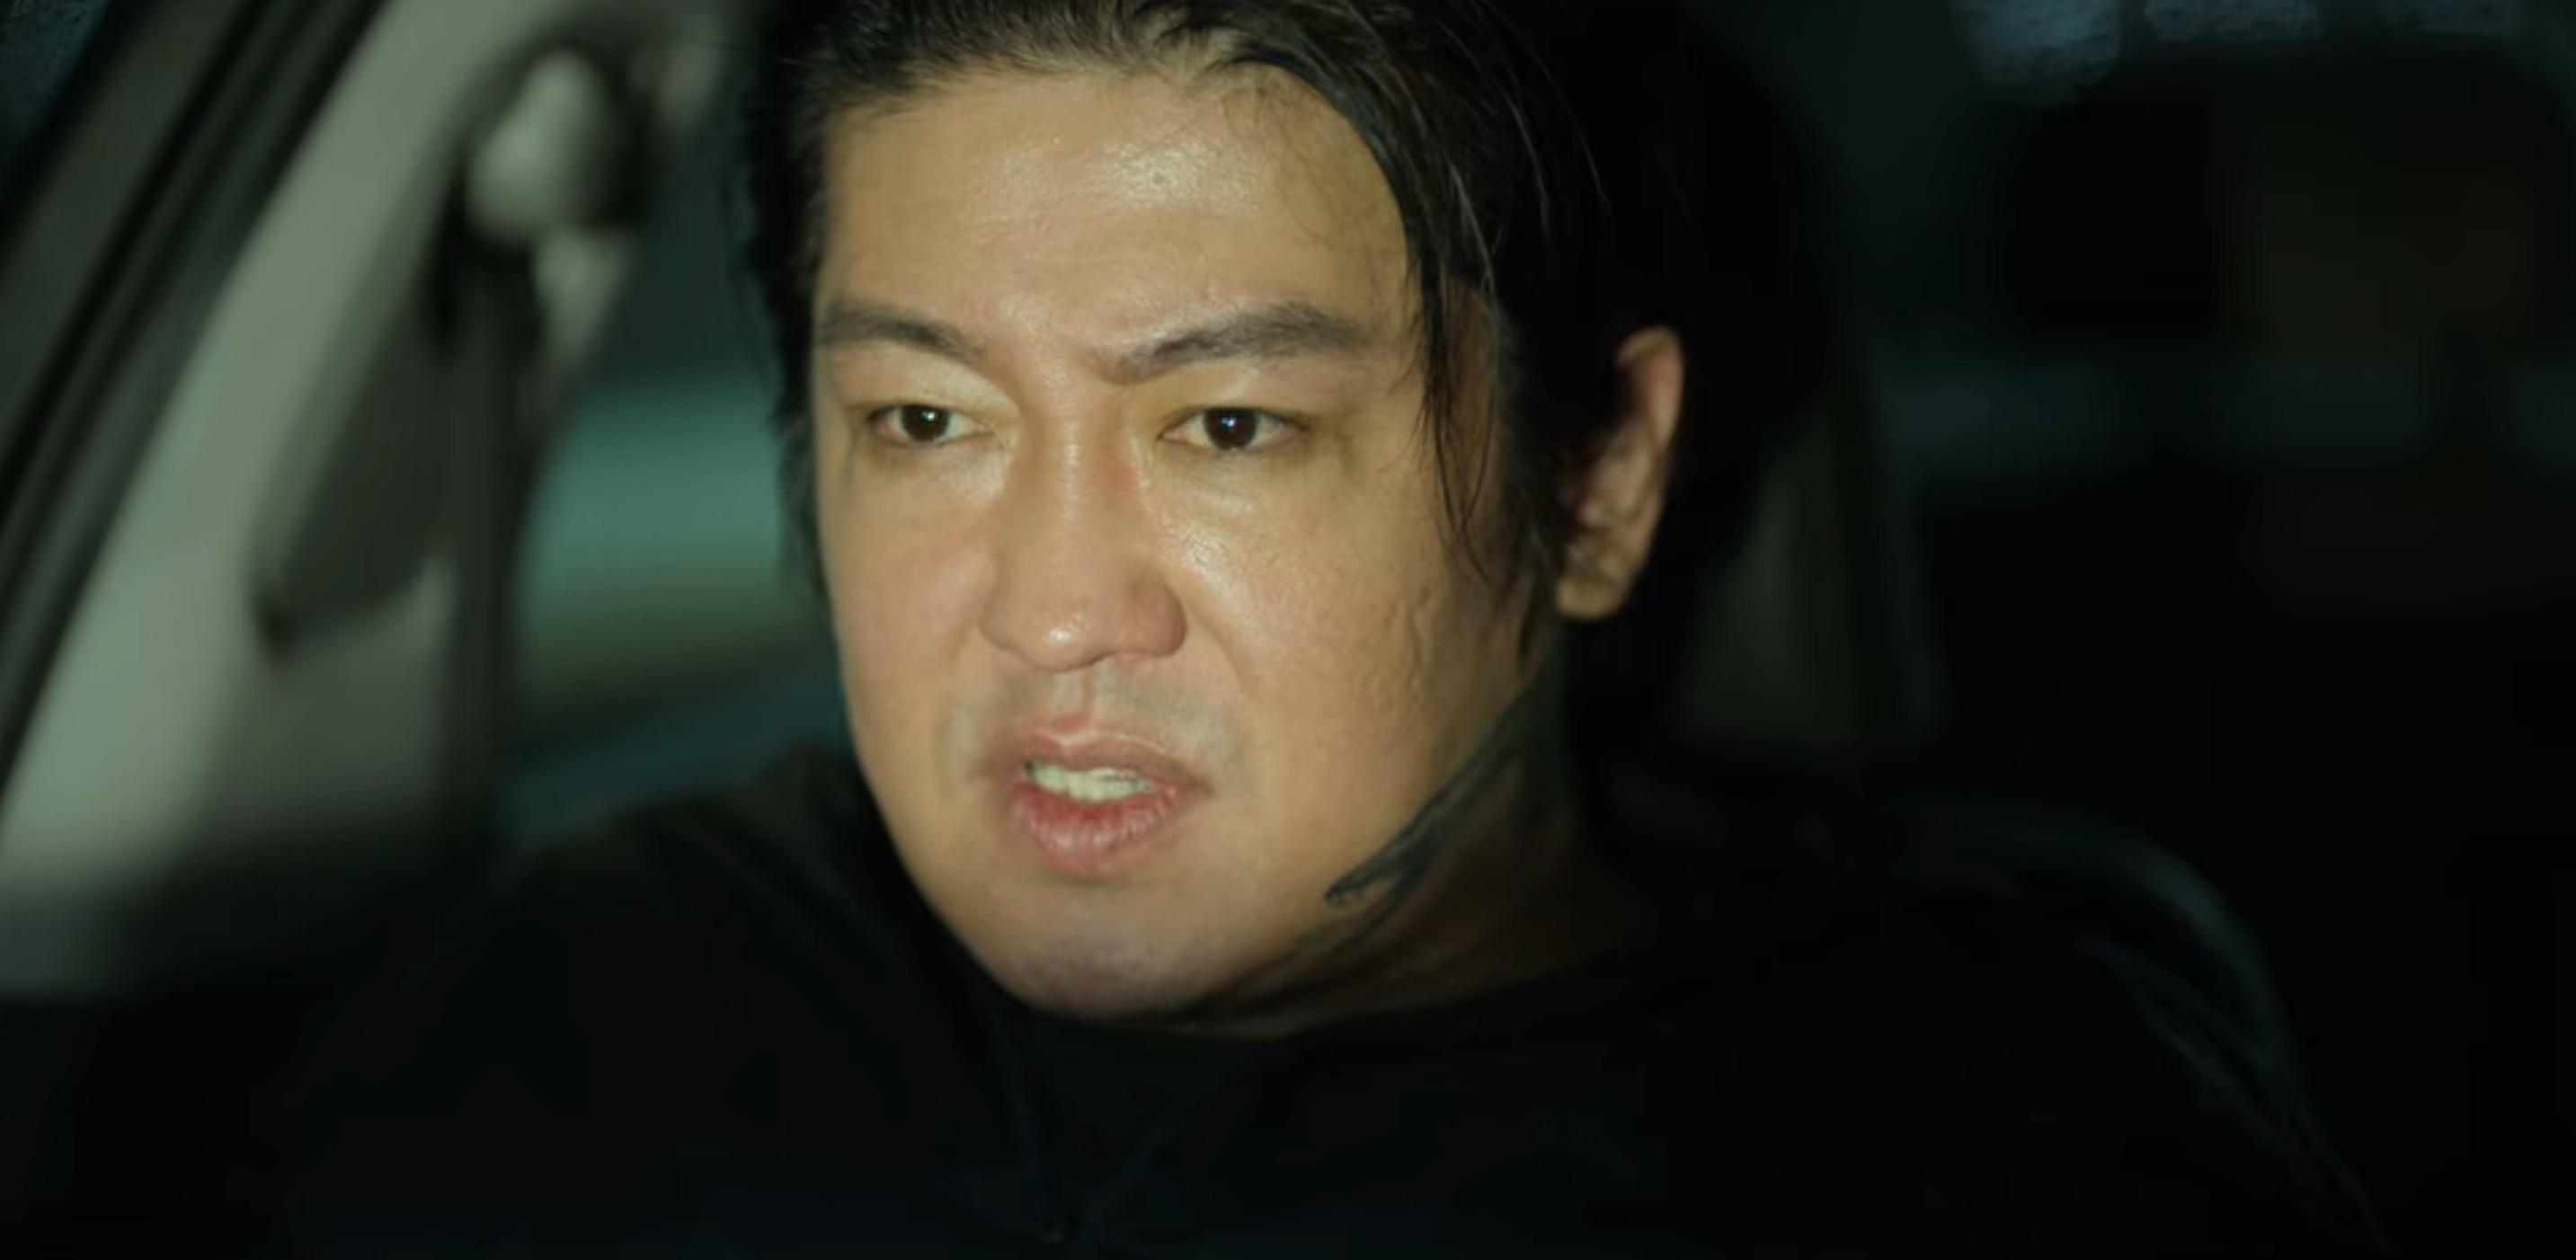 Squid Game Cast - Heo Sung-tae as Jang Deok-su - Vague Visages